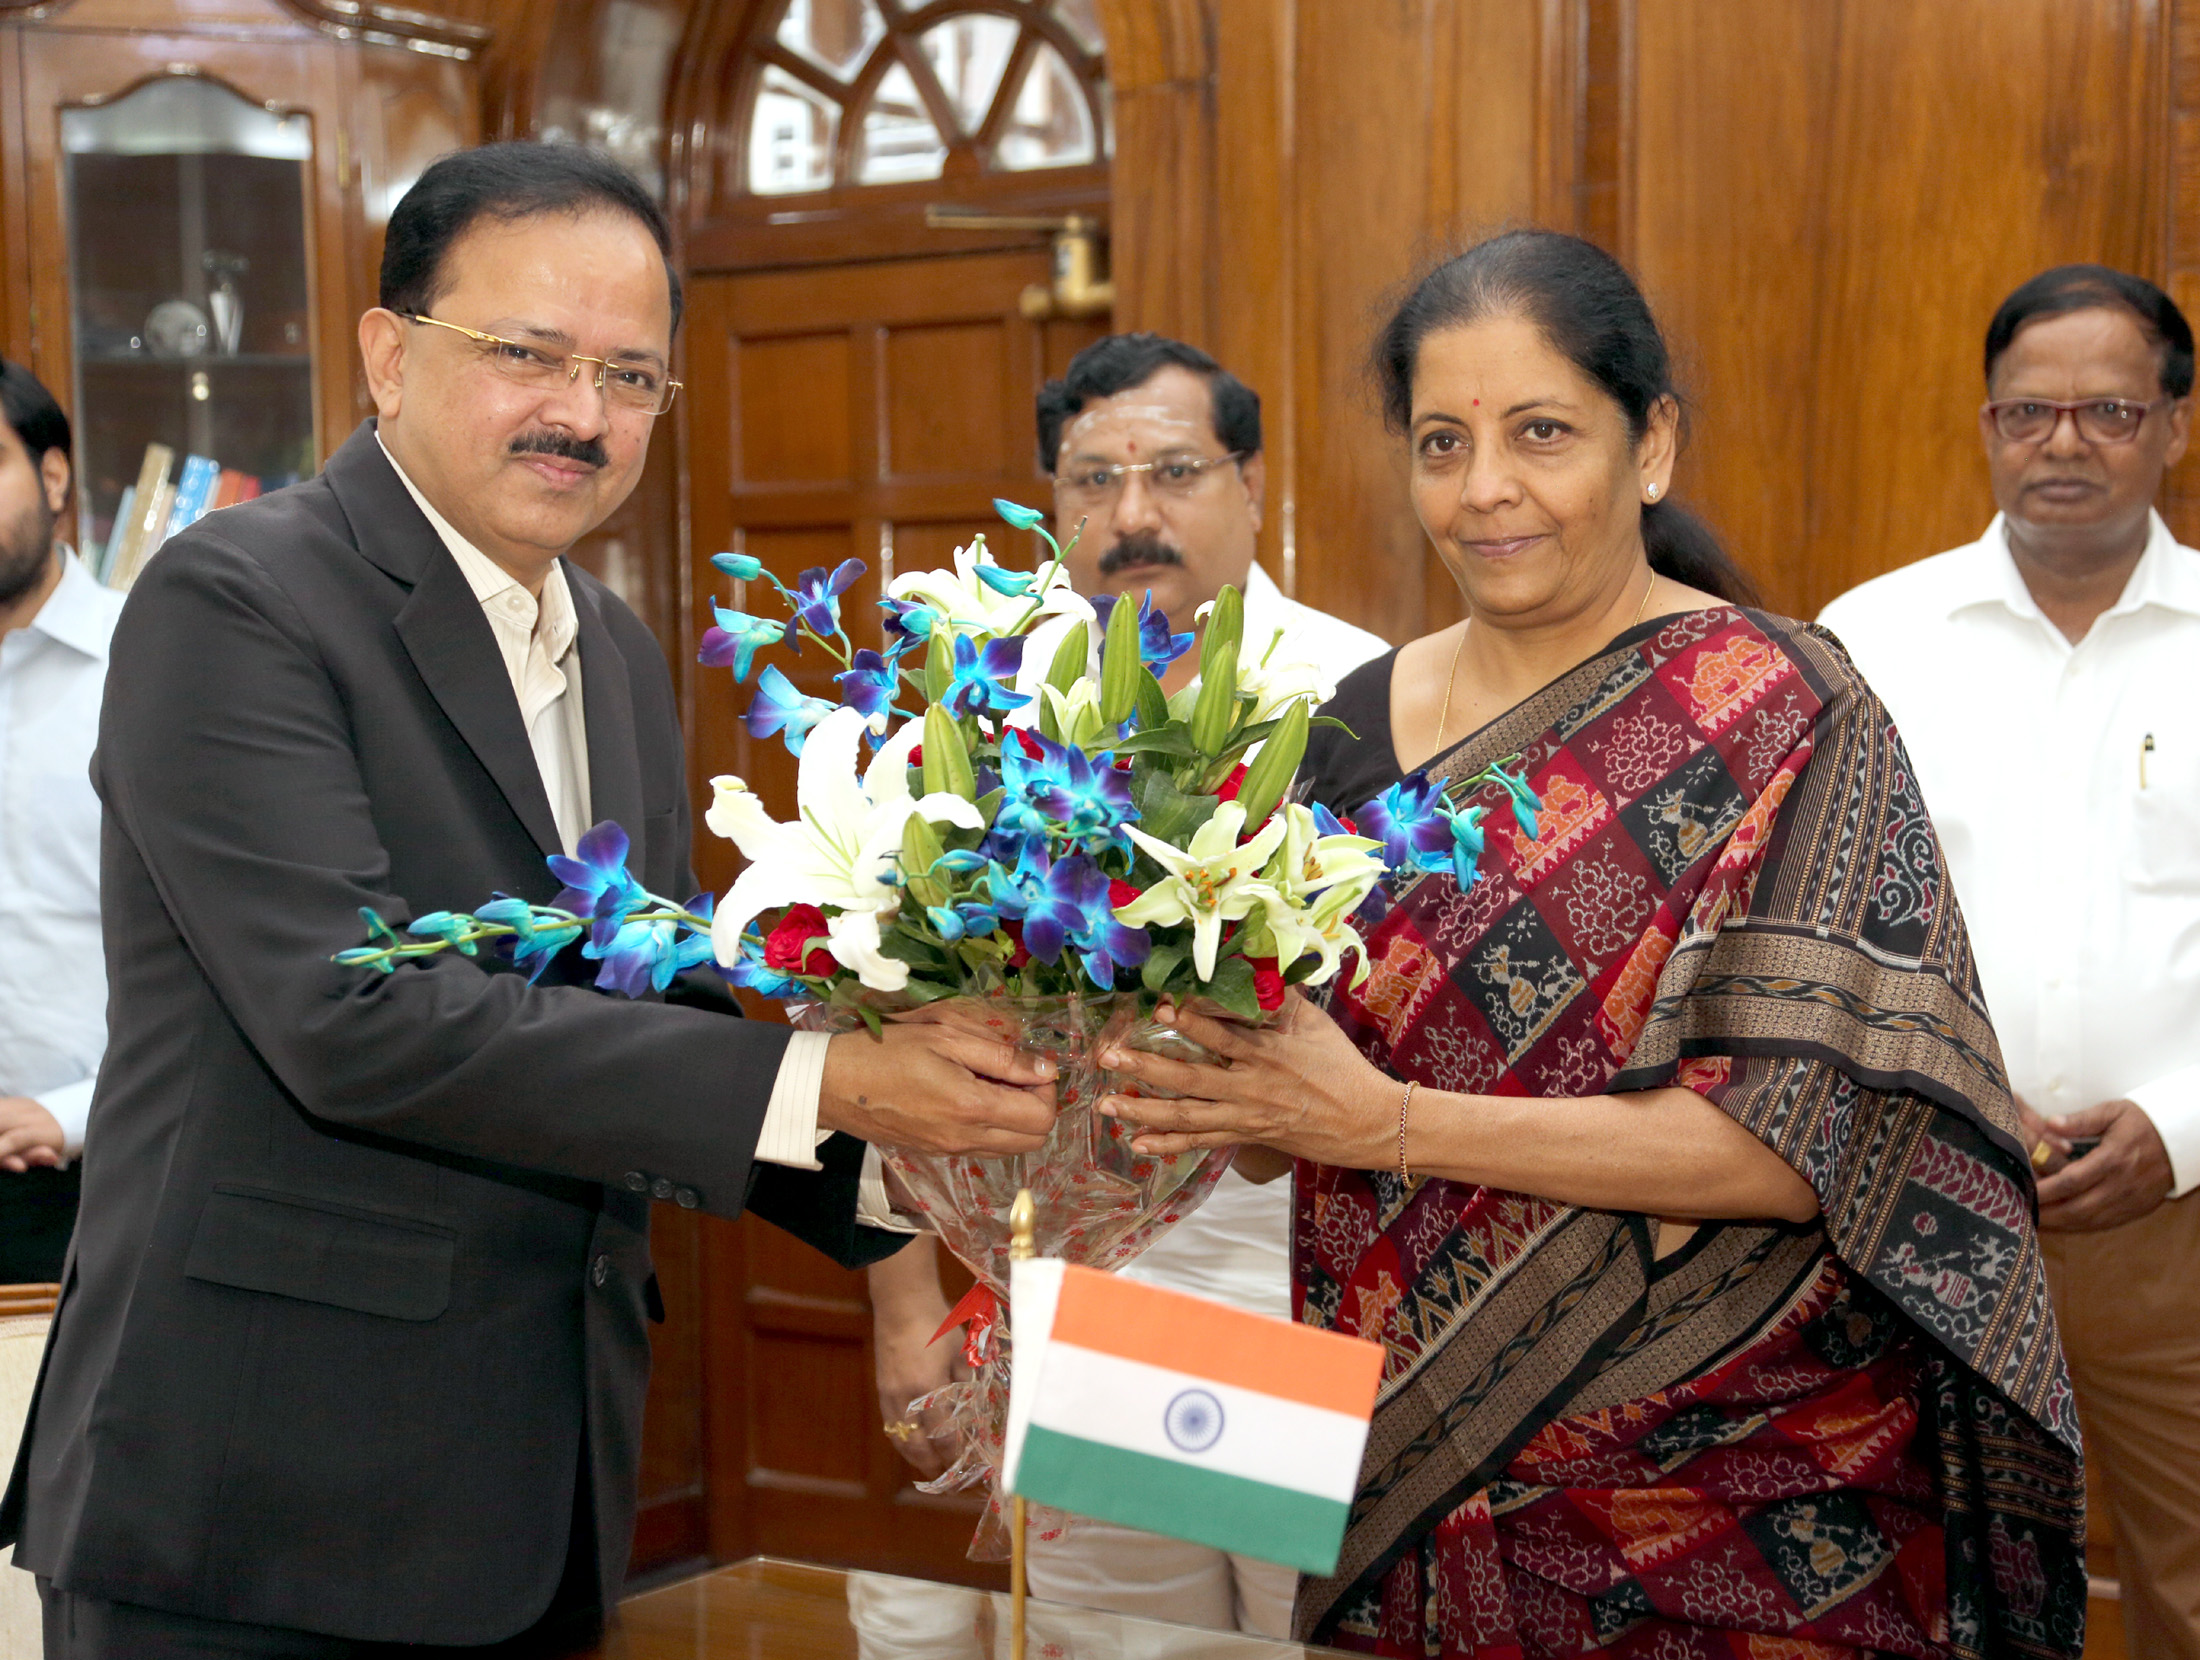 Smt. Nirmala Sitharaman being greeted by the Minister of State for Defence, Dr. Subhash Ramrao Bhamre after taking charge as the Union Minister for Defence, in New Delhi on September 07, 2017.